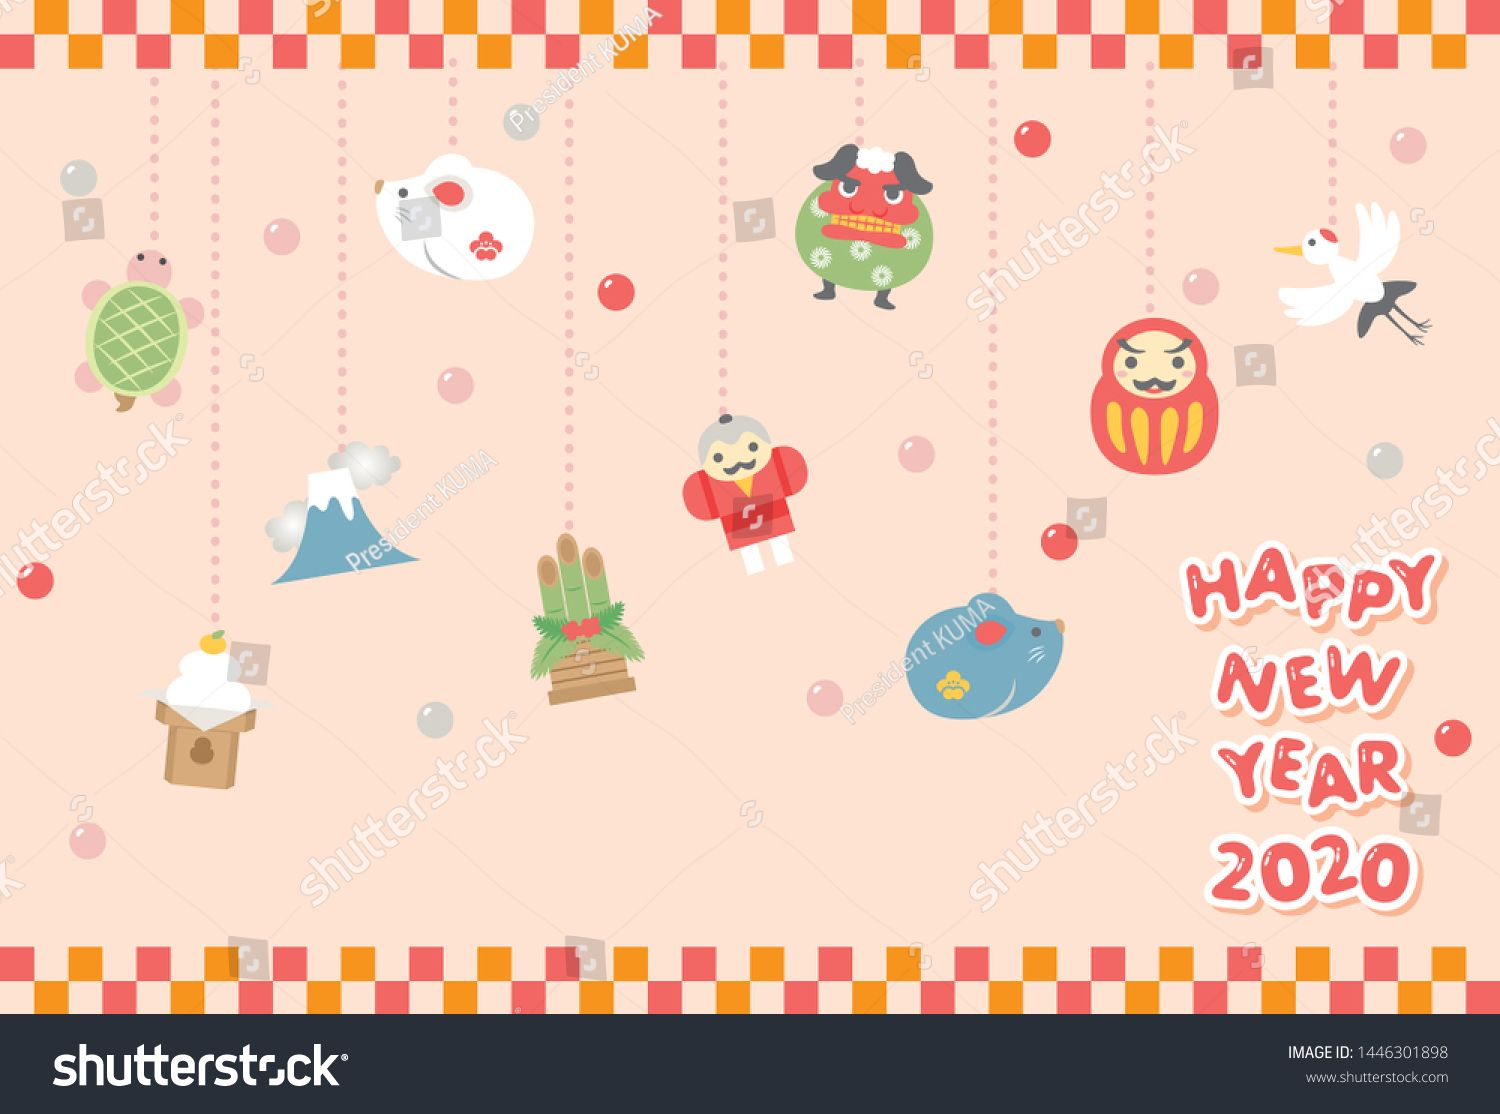 Japanese New Year S Card In 2020 Ad Sponsored Year Japanese Card New Year Card Japanese New Year Cards